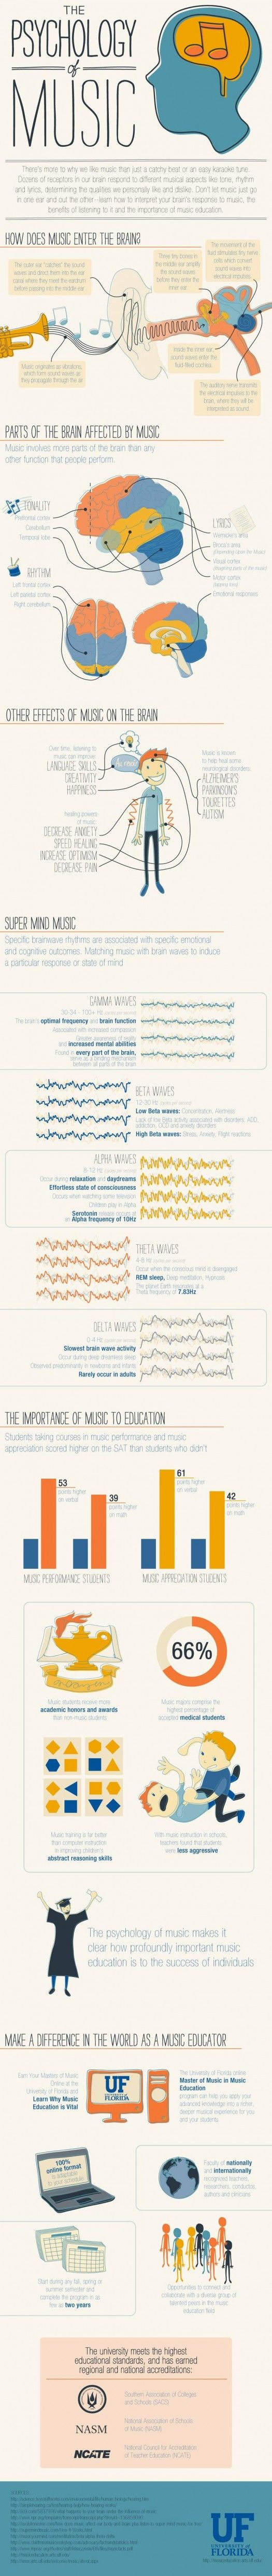 the psychology of music ignore the second half sorry but music psychology